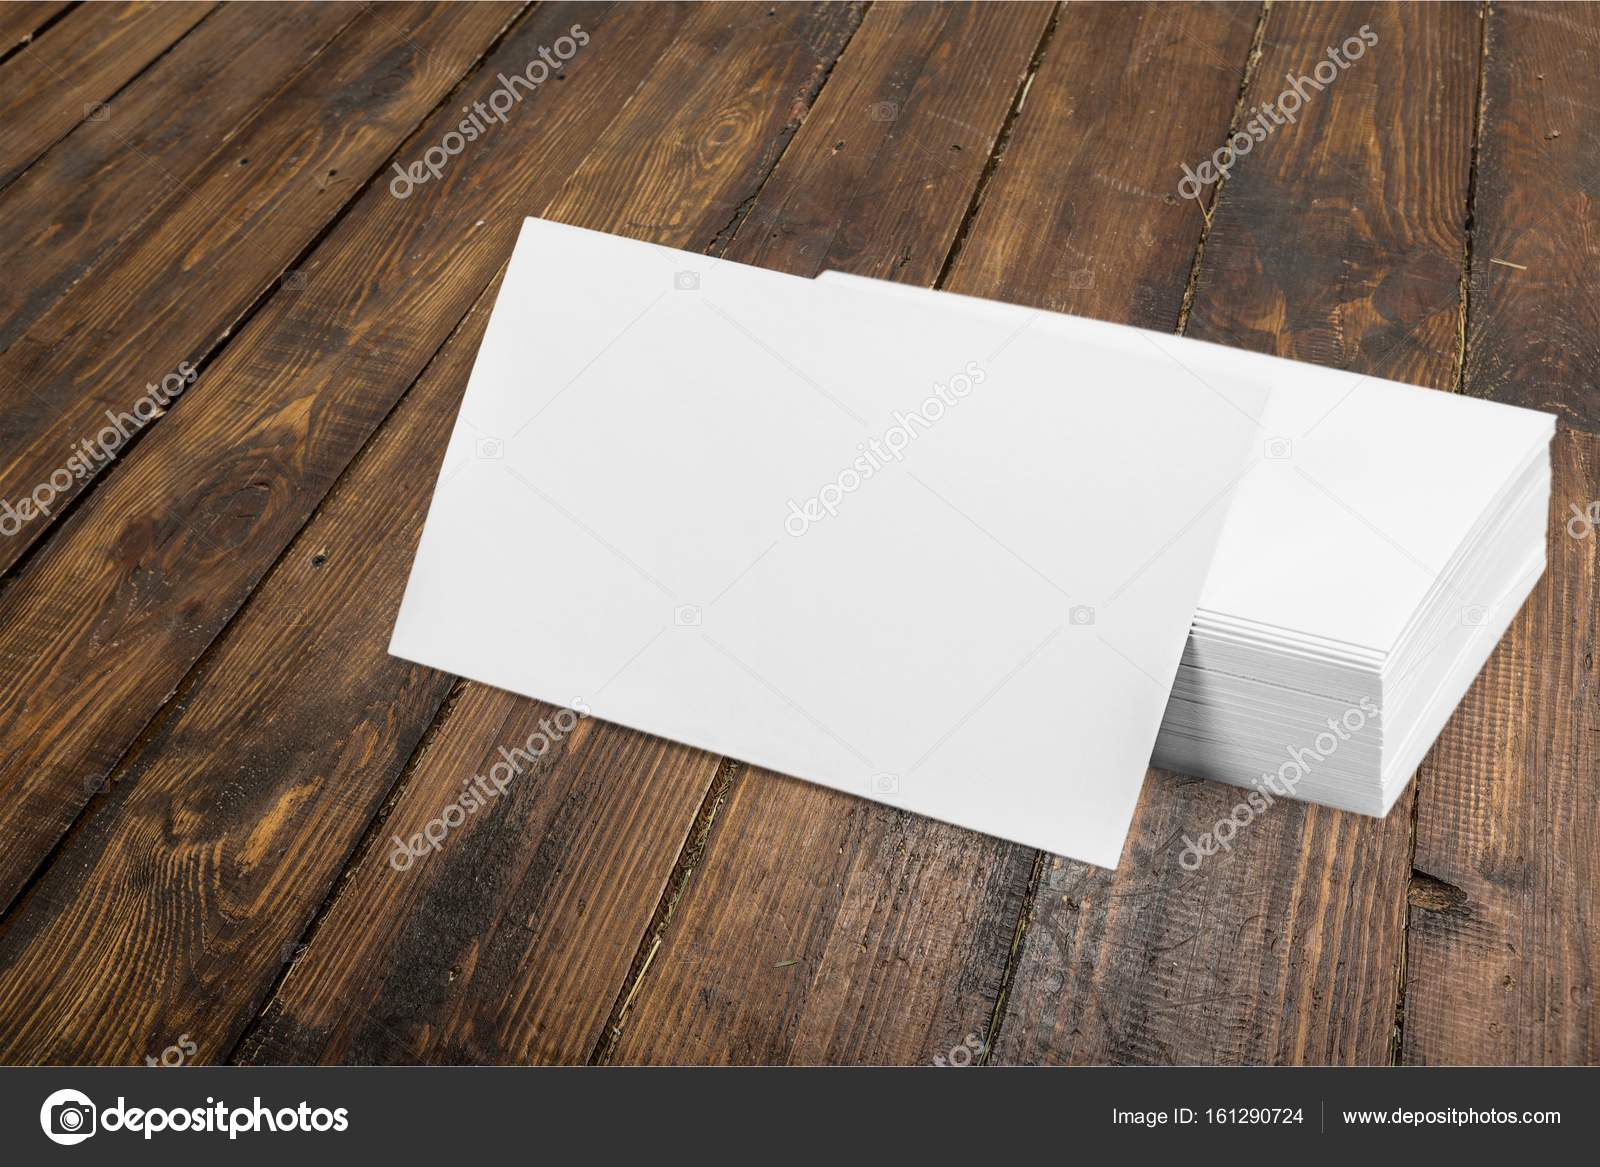 Blank business cards stock photo billiondigital 161290724 blank business cards on wooden background photo by billiondigital reheart Image collections